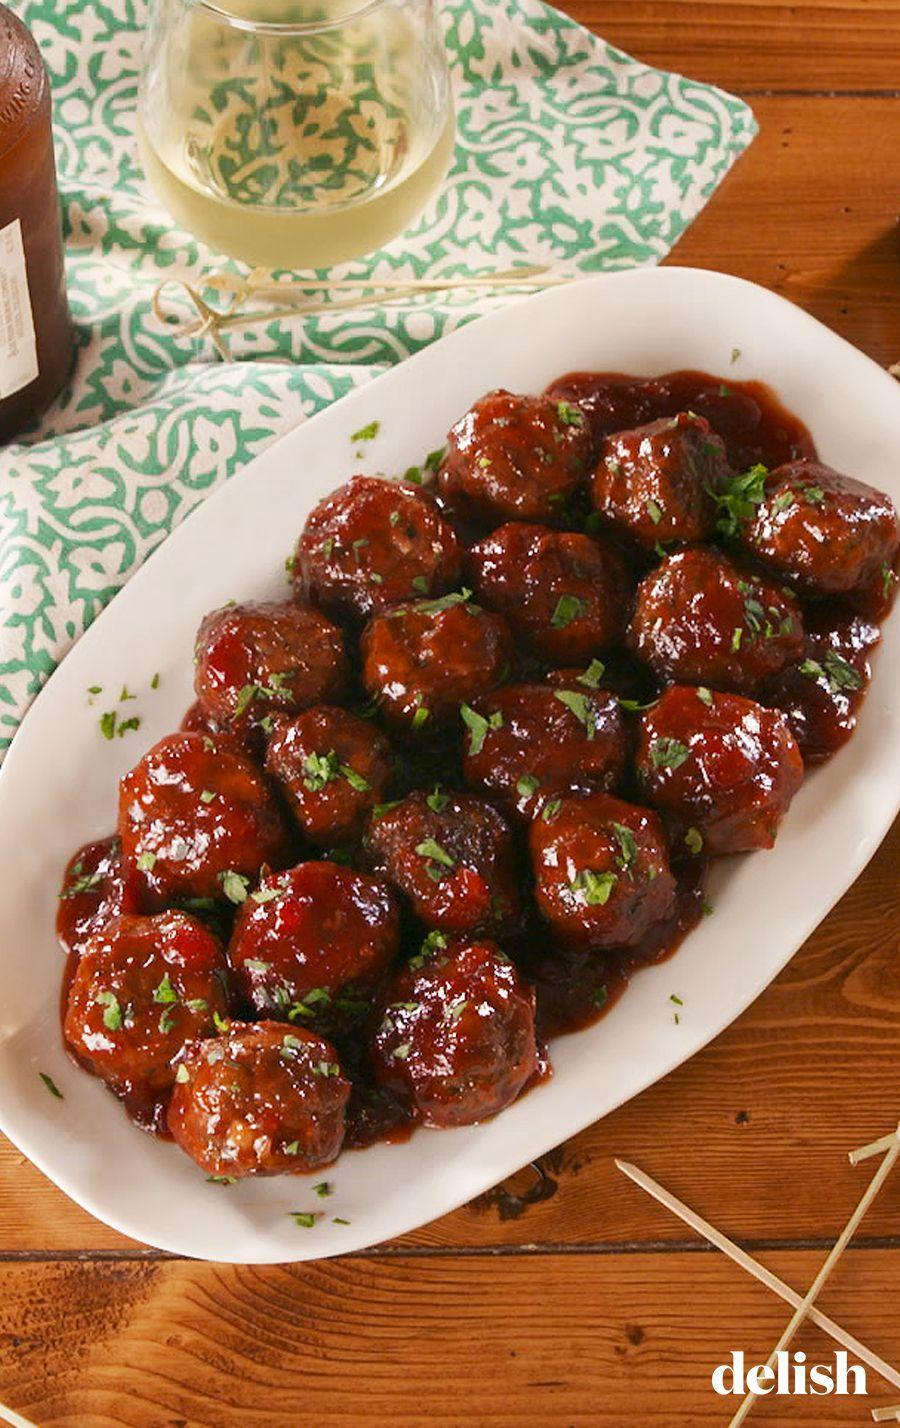 """<p>These are ALWAYS a crowd pleaser.</p><p>Get the recipe from <a href=""""https://www.delish.com/cooking/recipe-ideas/a23694828/cocktail-meatballs/"""" rel=""""nofollow noopener"""" target=""""_blank"""" data-ylk=""""slk:Delish"""" class=""""link rapid-noclick-resp"""">Delish</a>. </p>"""